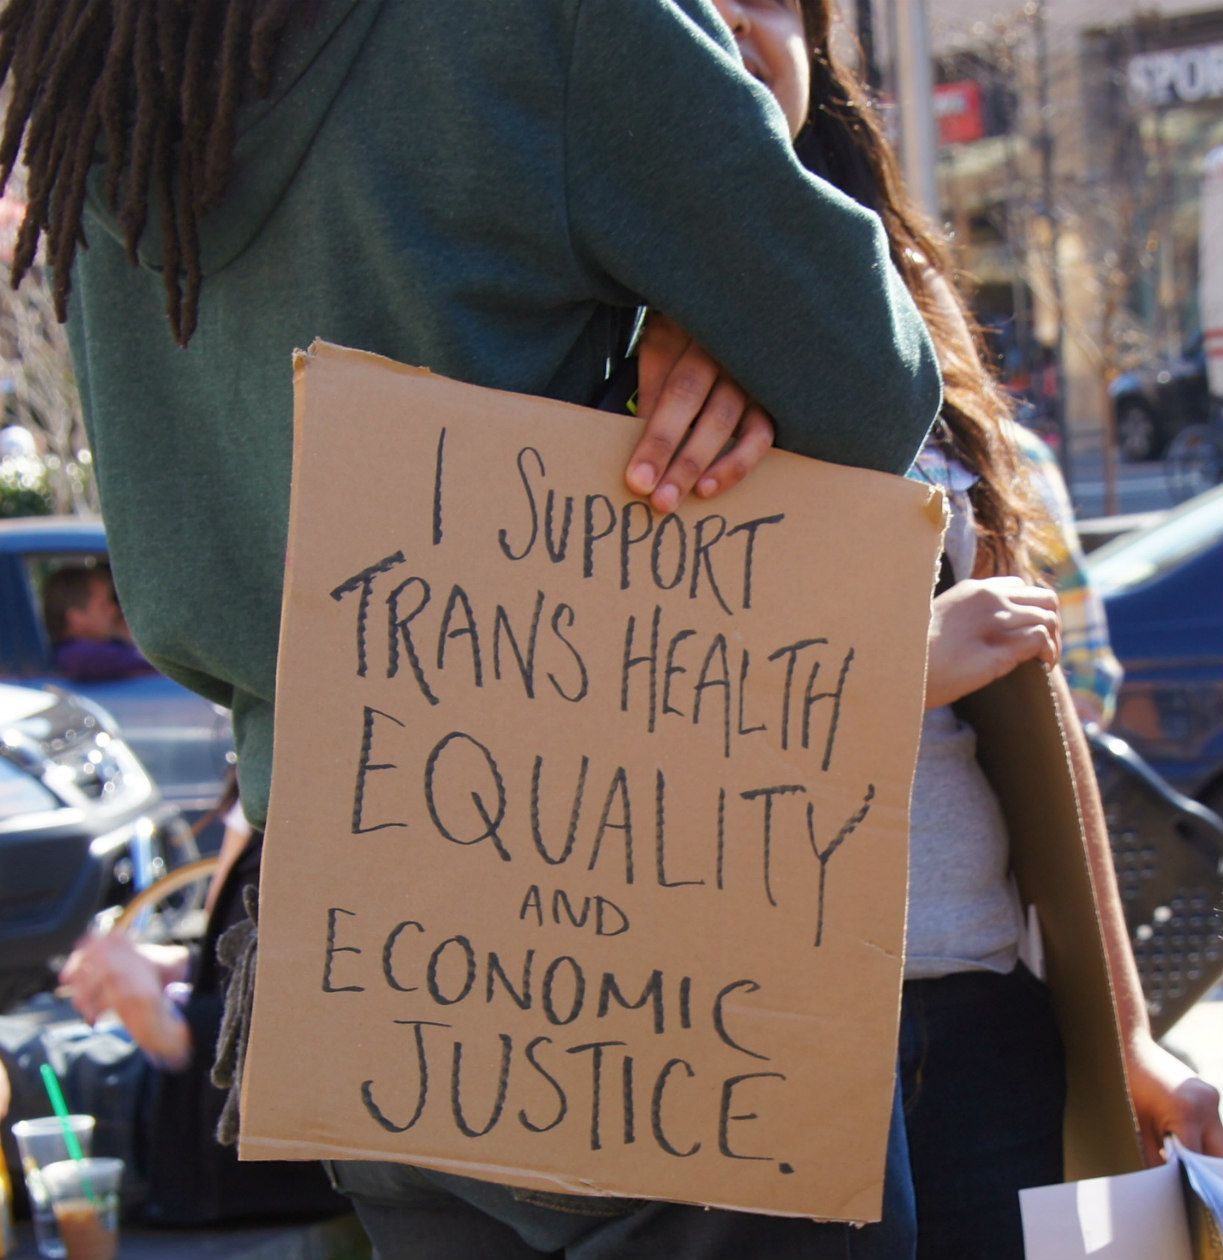 a Black person with locs holding a I Support Trans Equality, Healthcare, and Economic Justice cardboard sign at a rally